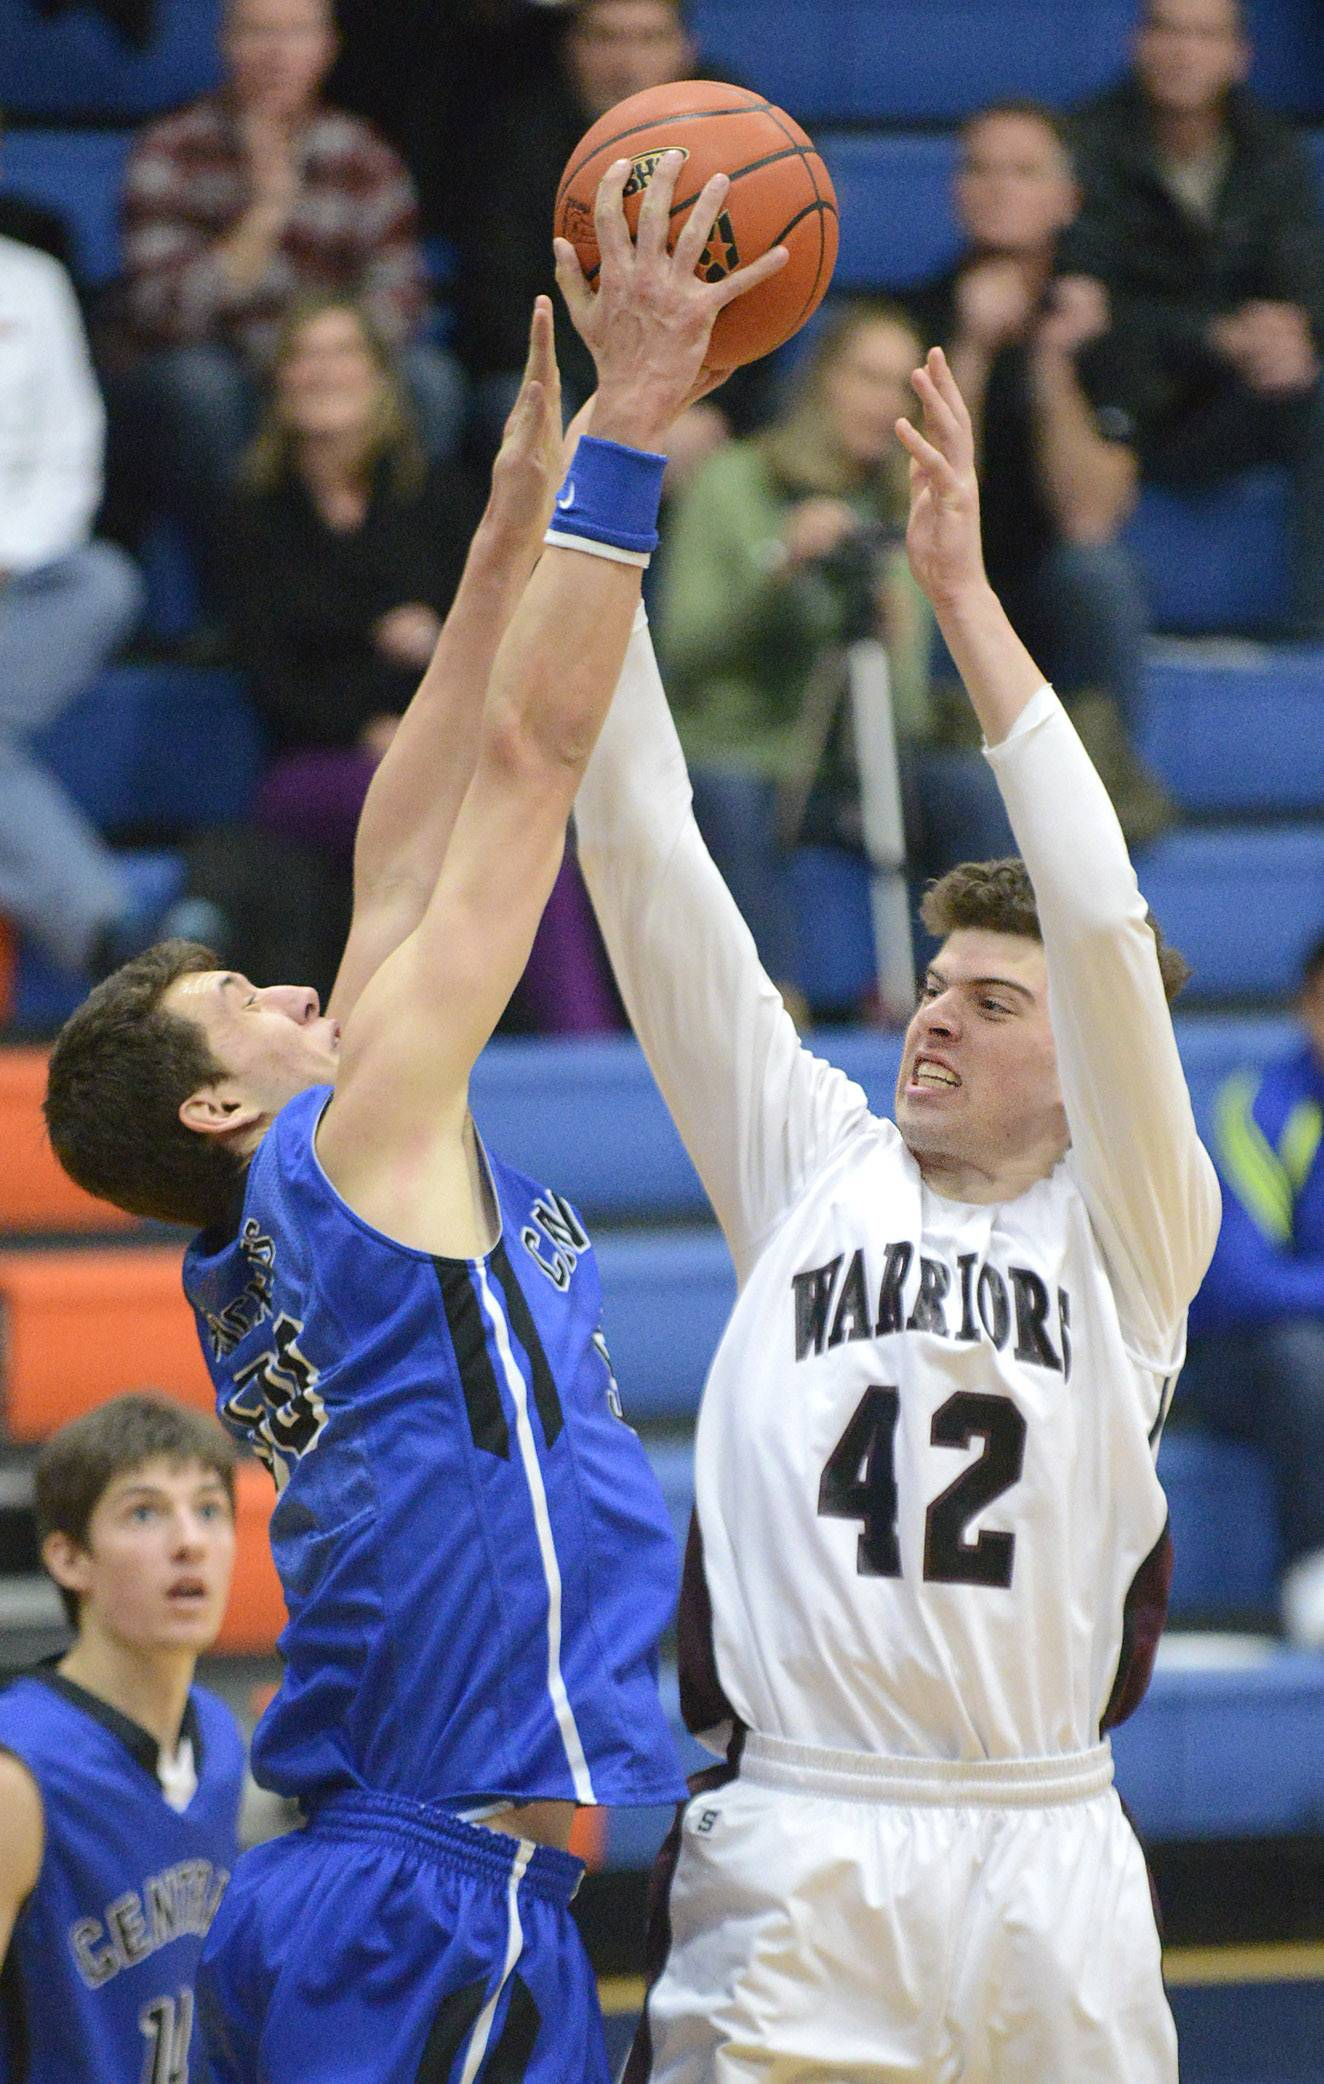 Burlington Central's Duncan Ozburn blocks a shot by Wheaton Academy's Chandler Fuzak in the third quarter of the Class 3A regional at Genoa-Kingston High School in Genoa on Wednesday, March 5.